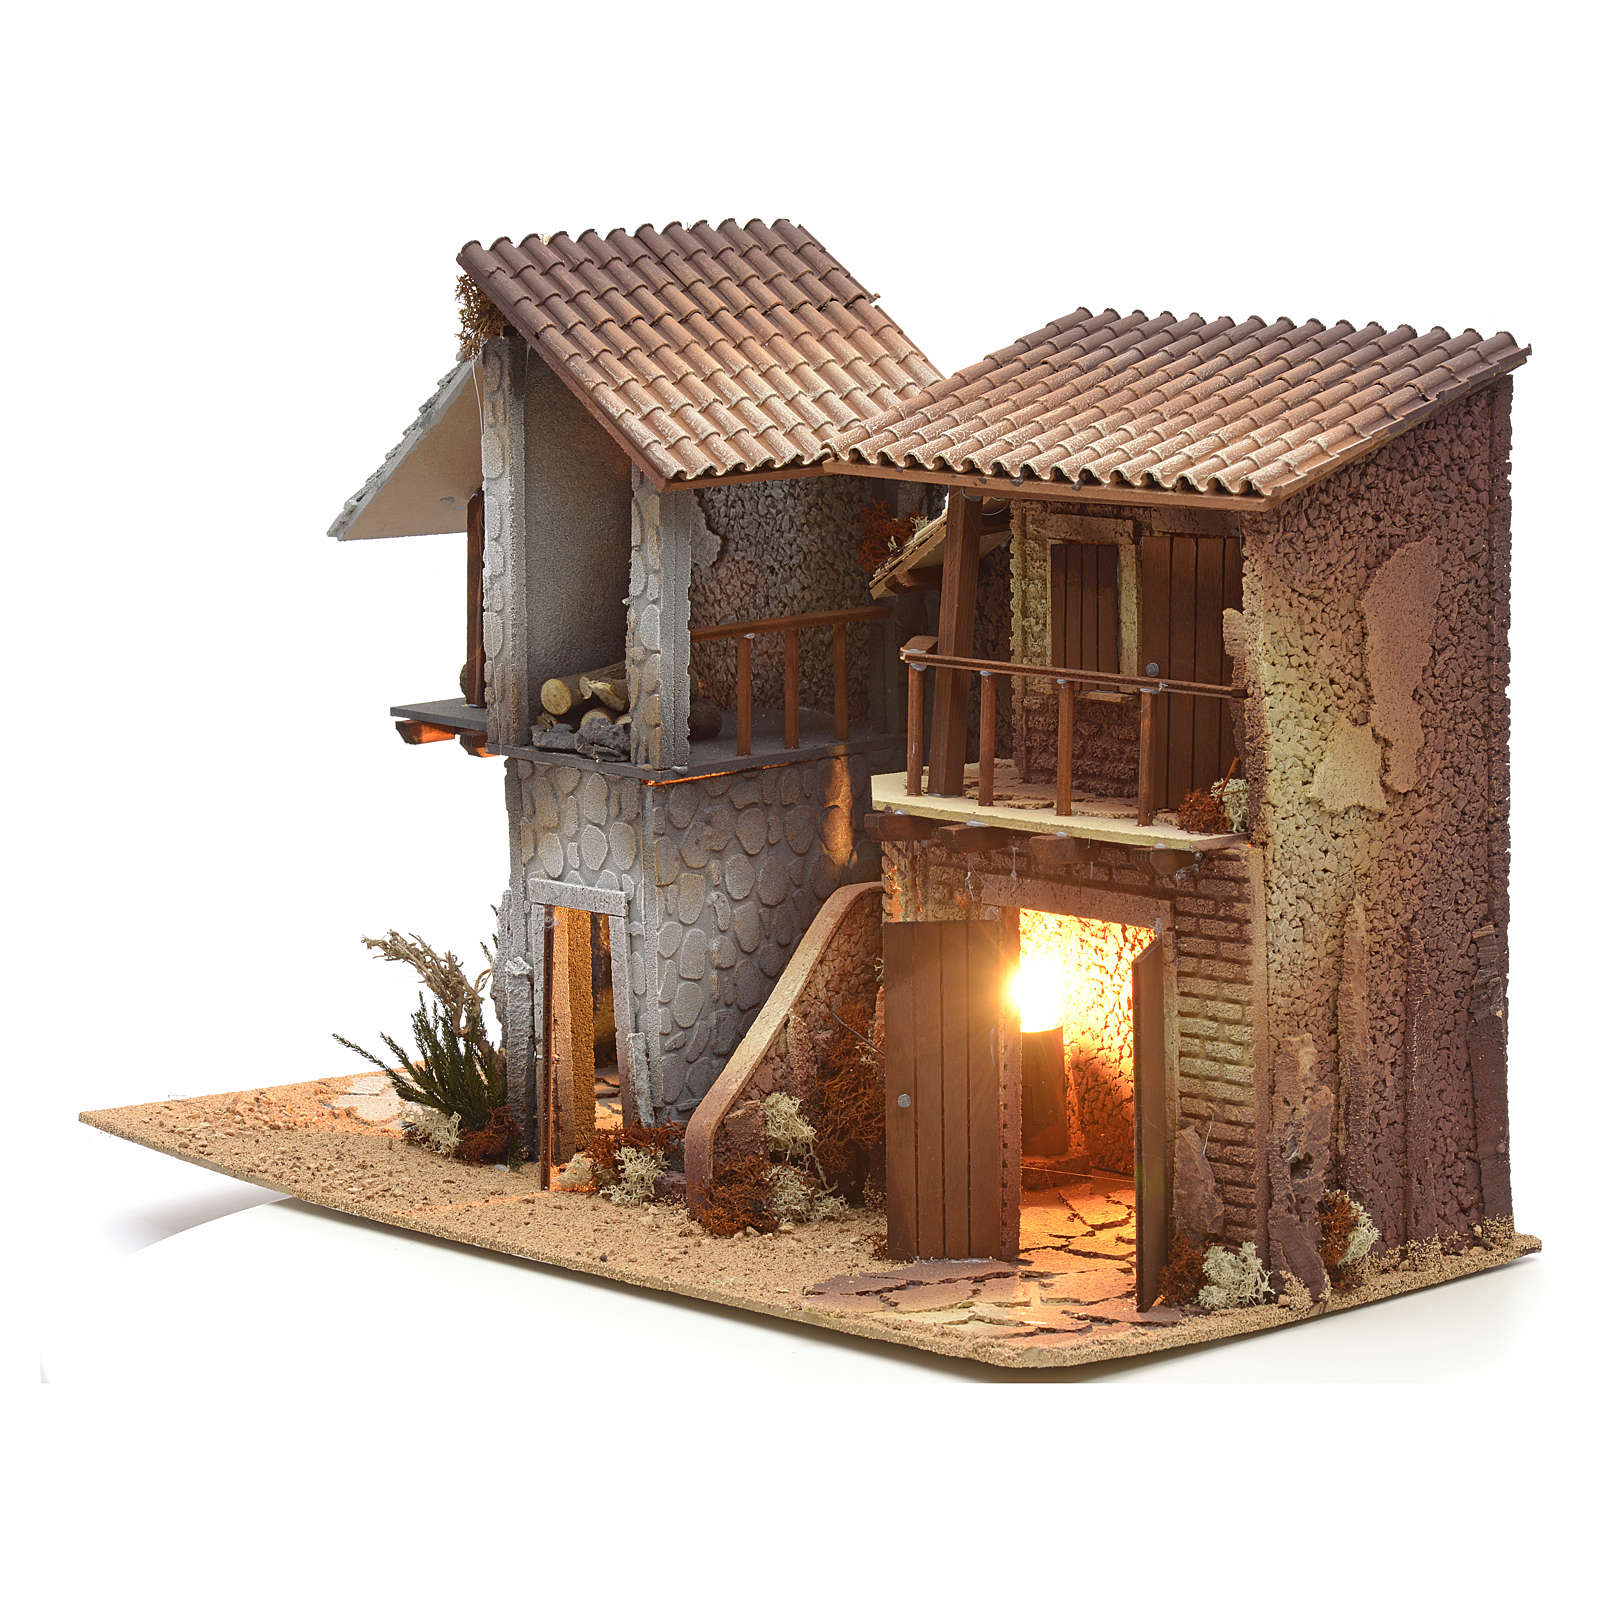 Nativity setting, double house, northern style 4